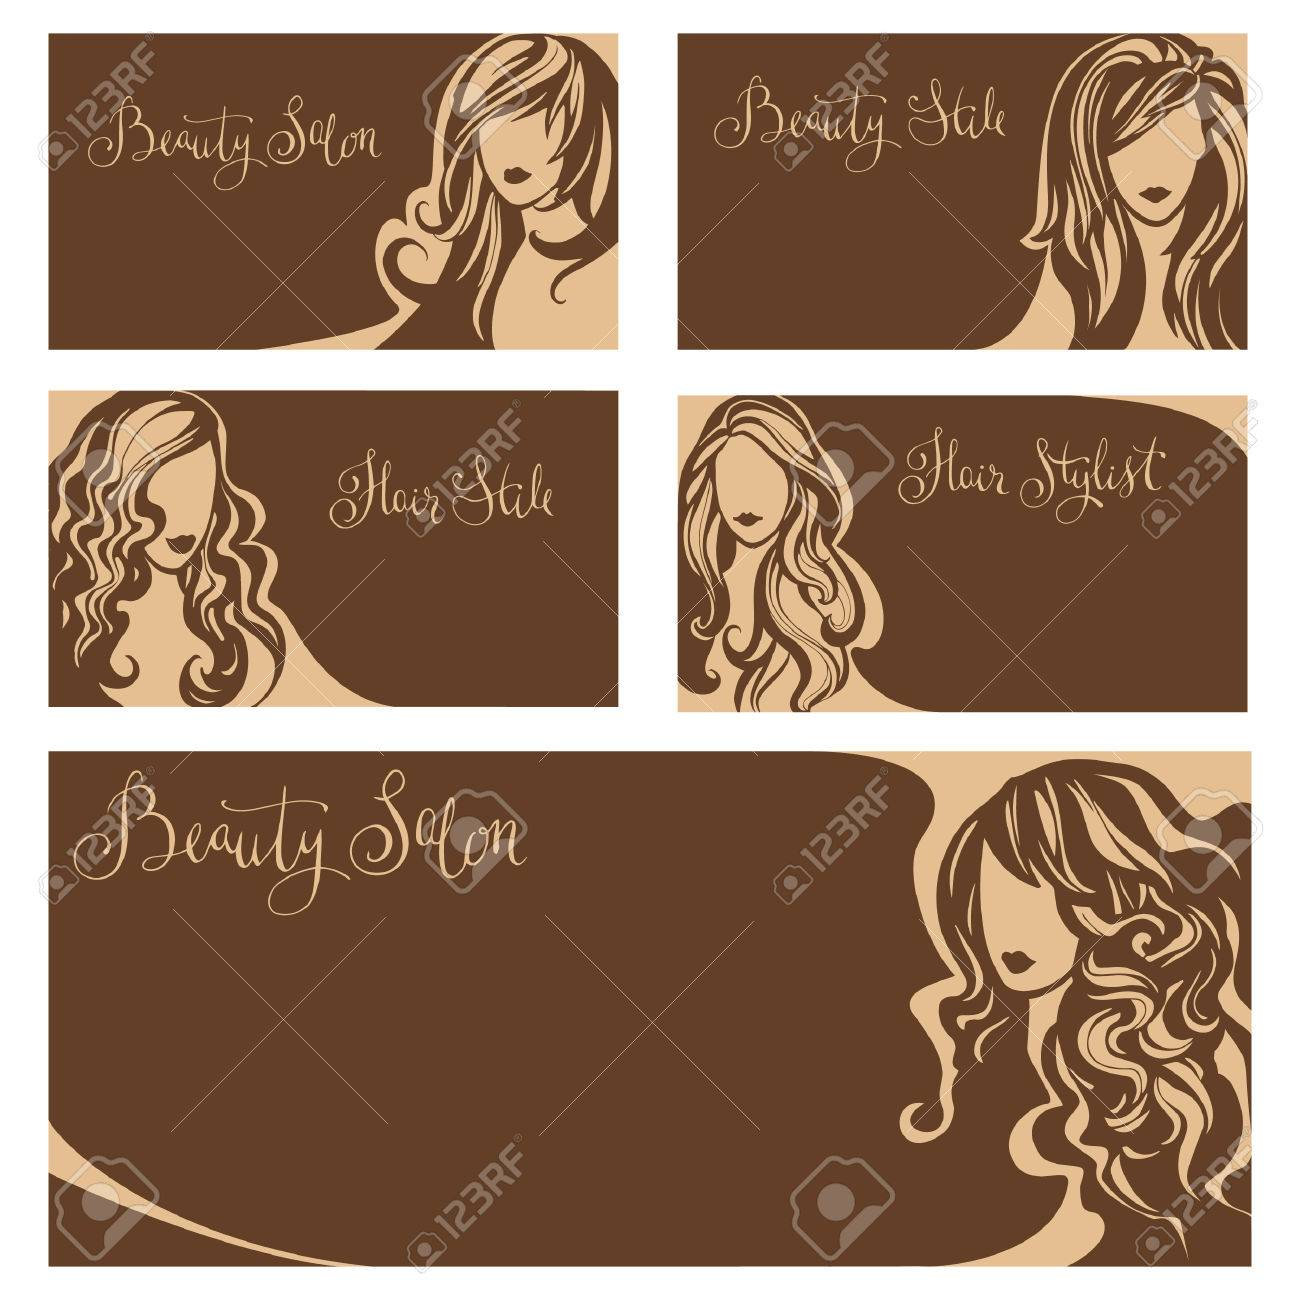 Vector Vintage Collection Of Business Cards For Beauty Salon